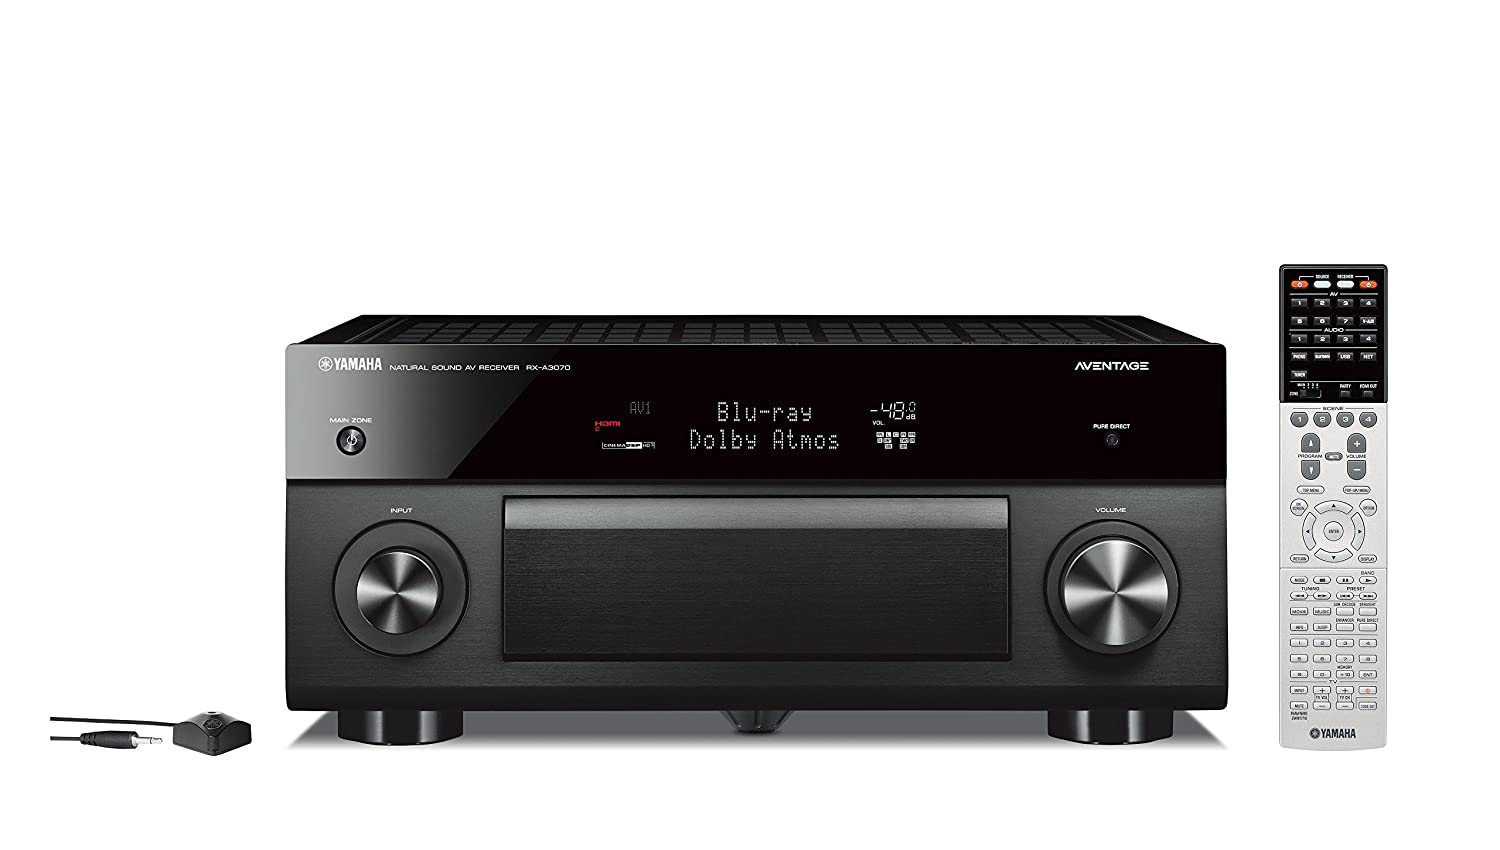 Amazon.com: Yamaha AVENTAGE Audio & Video Component Receiver, Black  (RX-A3070BL), Works with Alexa: Electronics